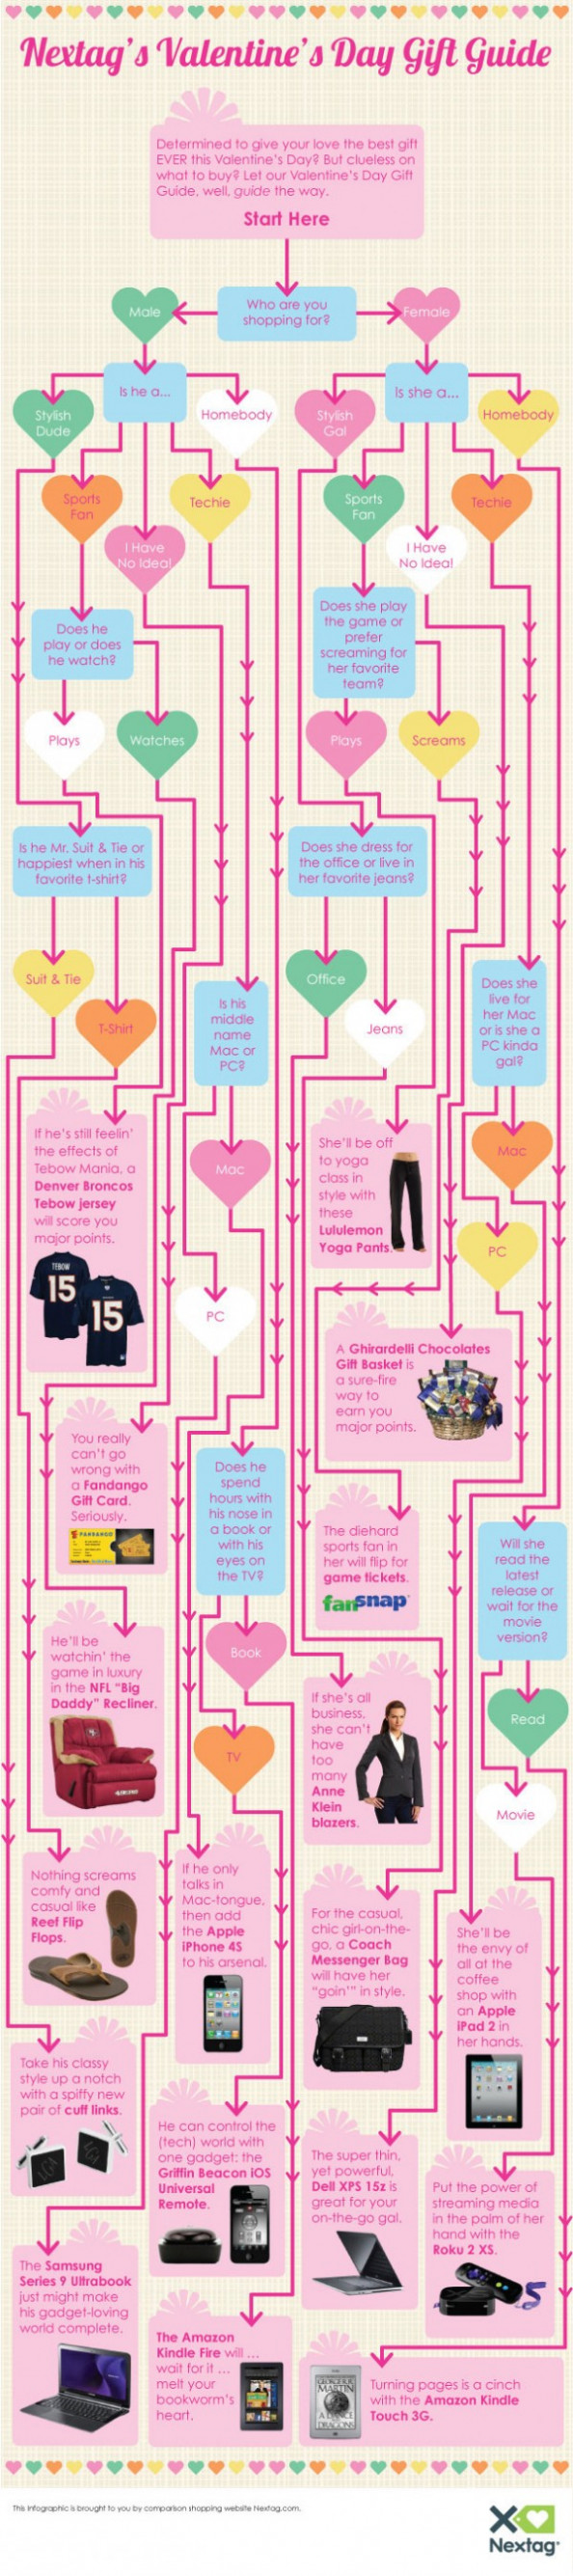 Nextag Valentine's Day Gift Guide Infographic